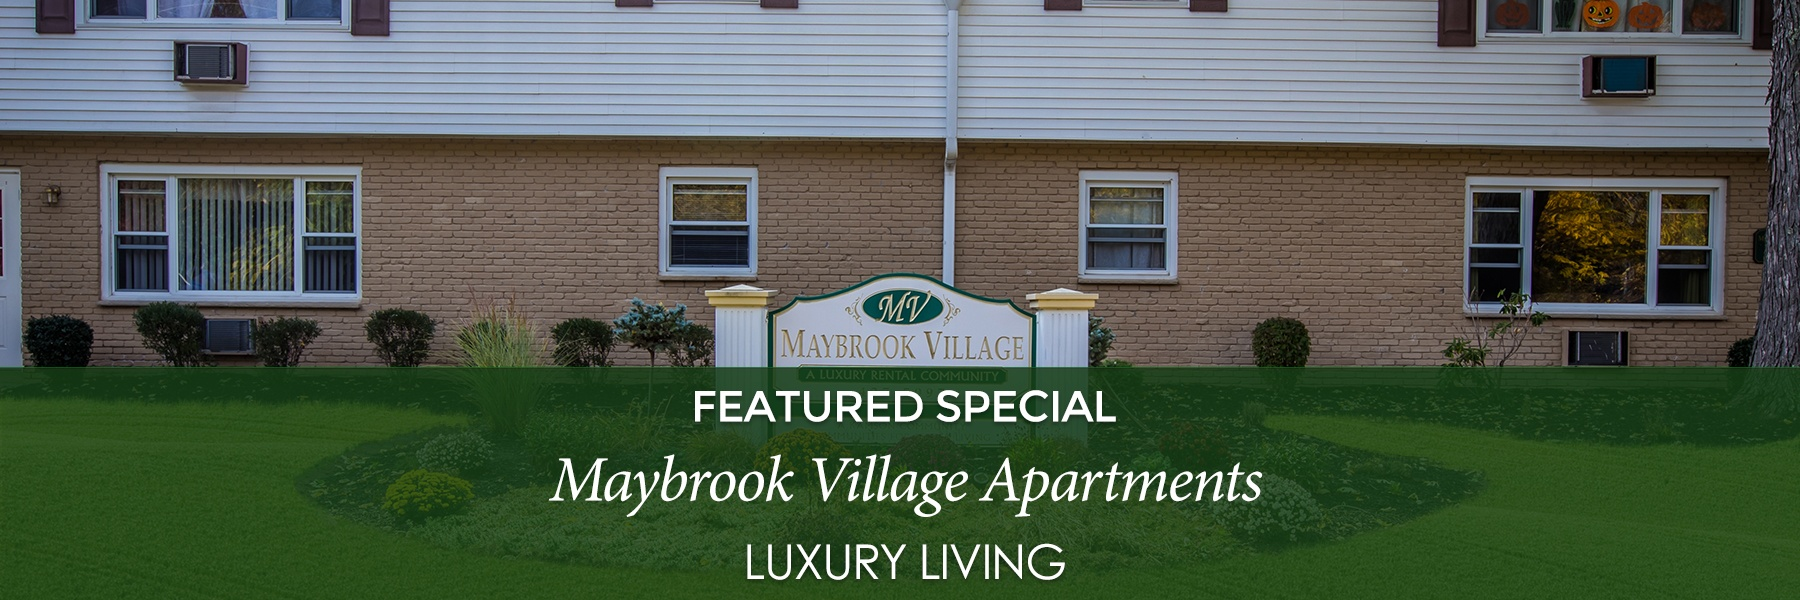 Maybrook Village Apartments For Rent in Maybrook, NY Specials